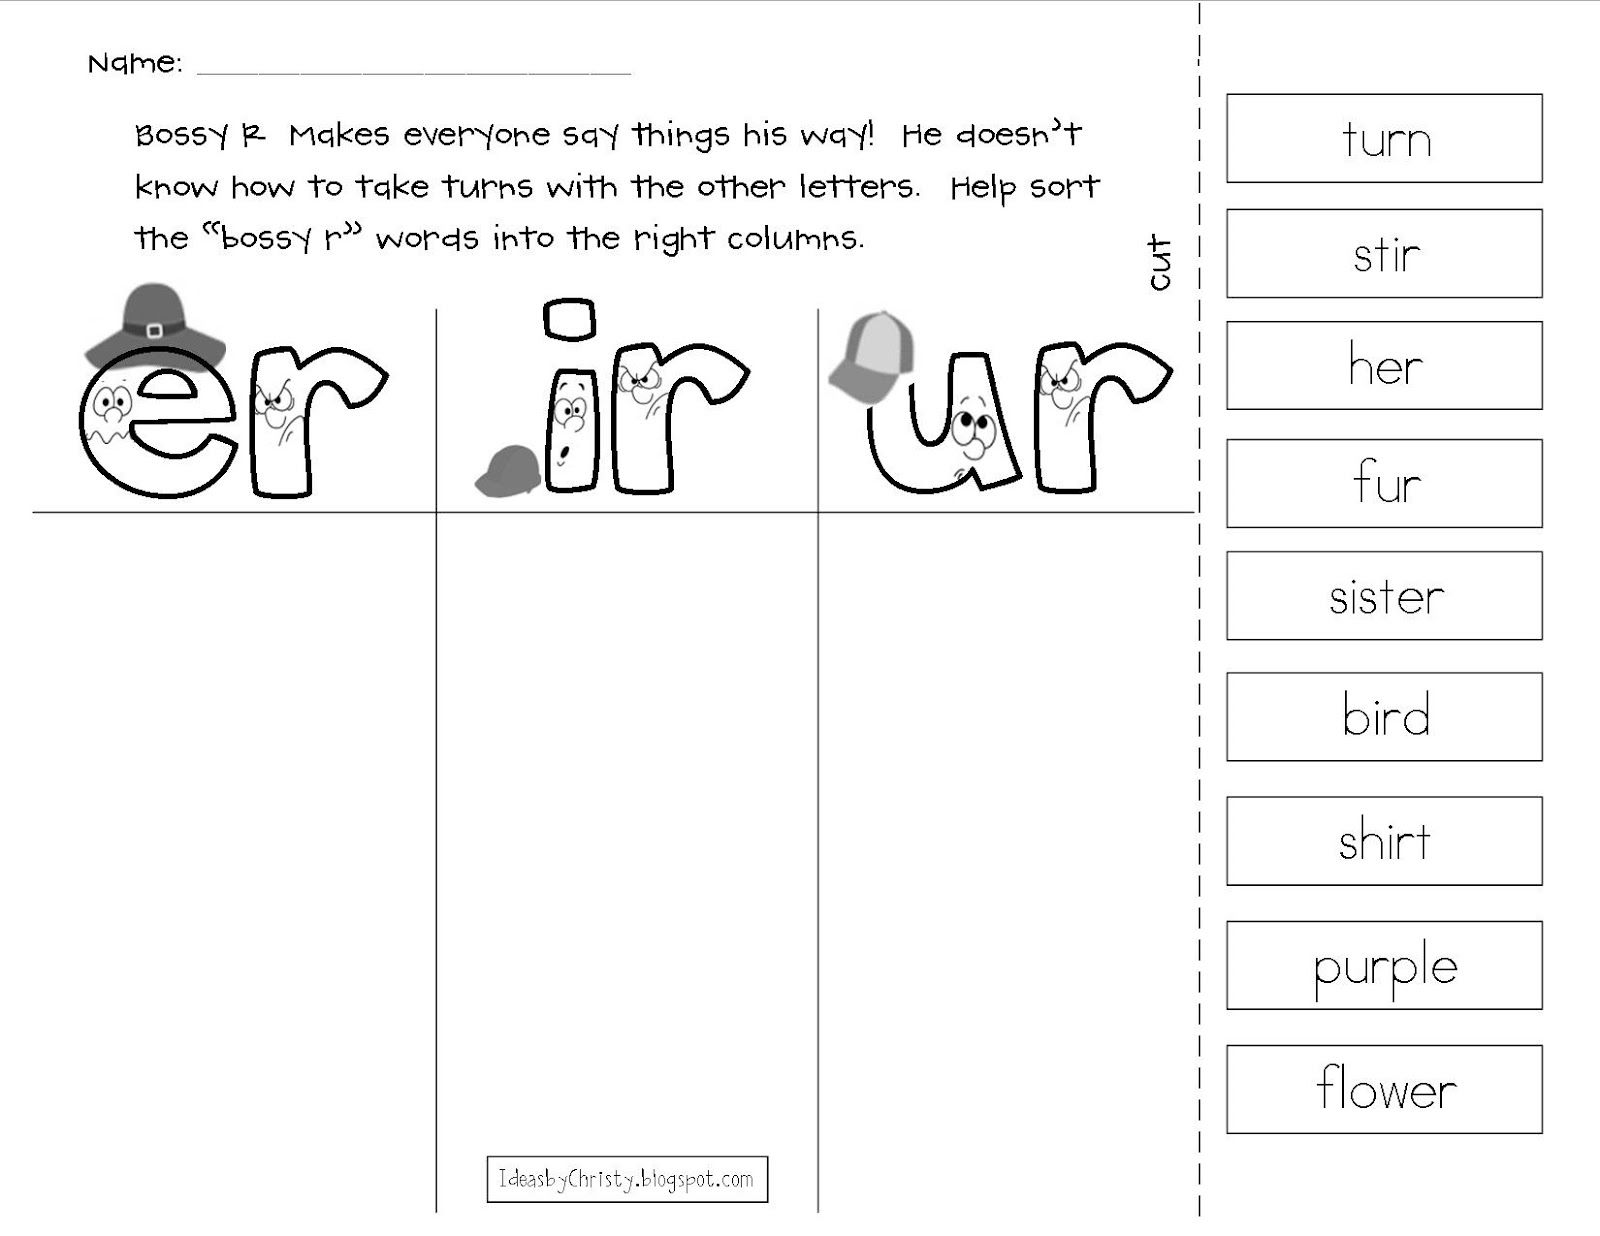 Uncategorized R Controlled Vowels Worksheet bossy r worksheet free worksheets library download and print samsungblueearth controlled vowels